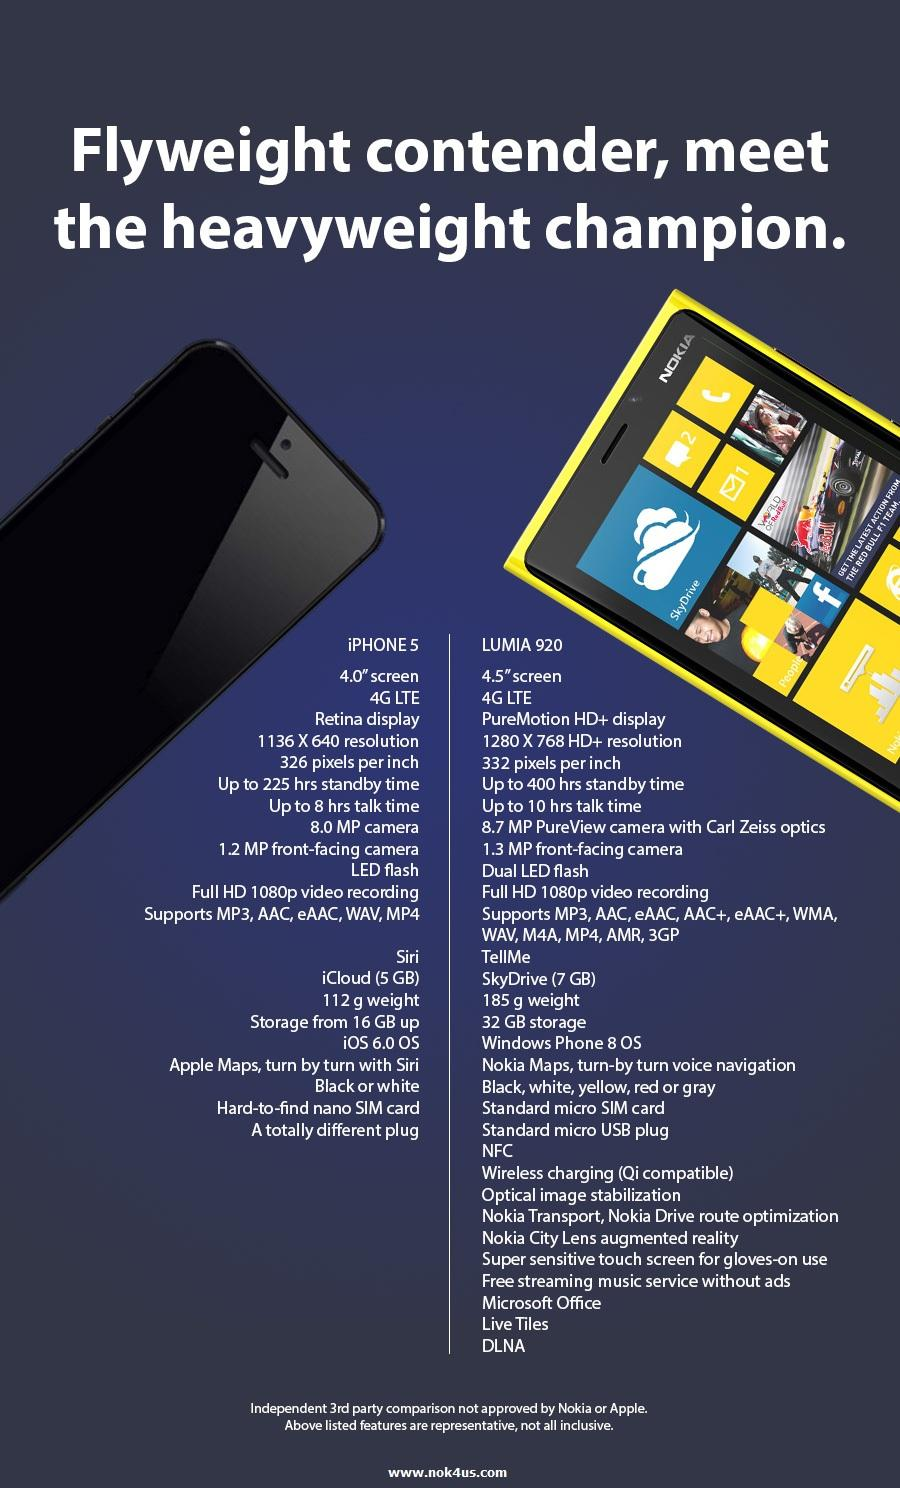 Nokia Lumia 920 Vs Apple IPhone 5 In Samsung Style